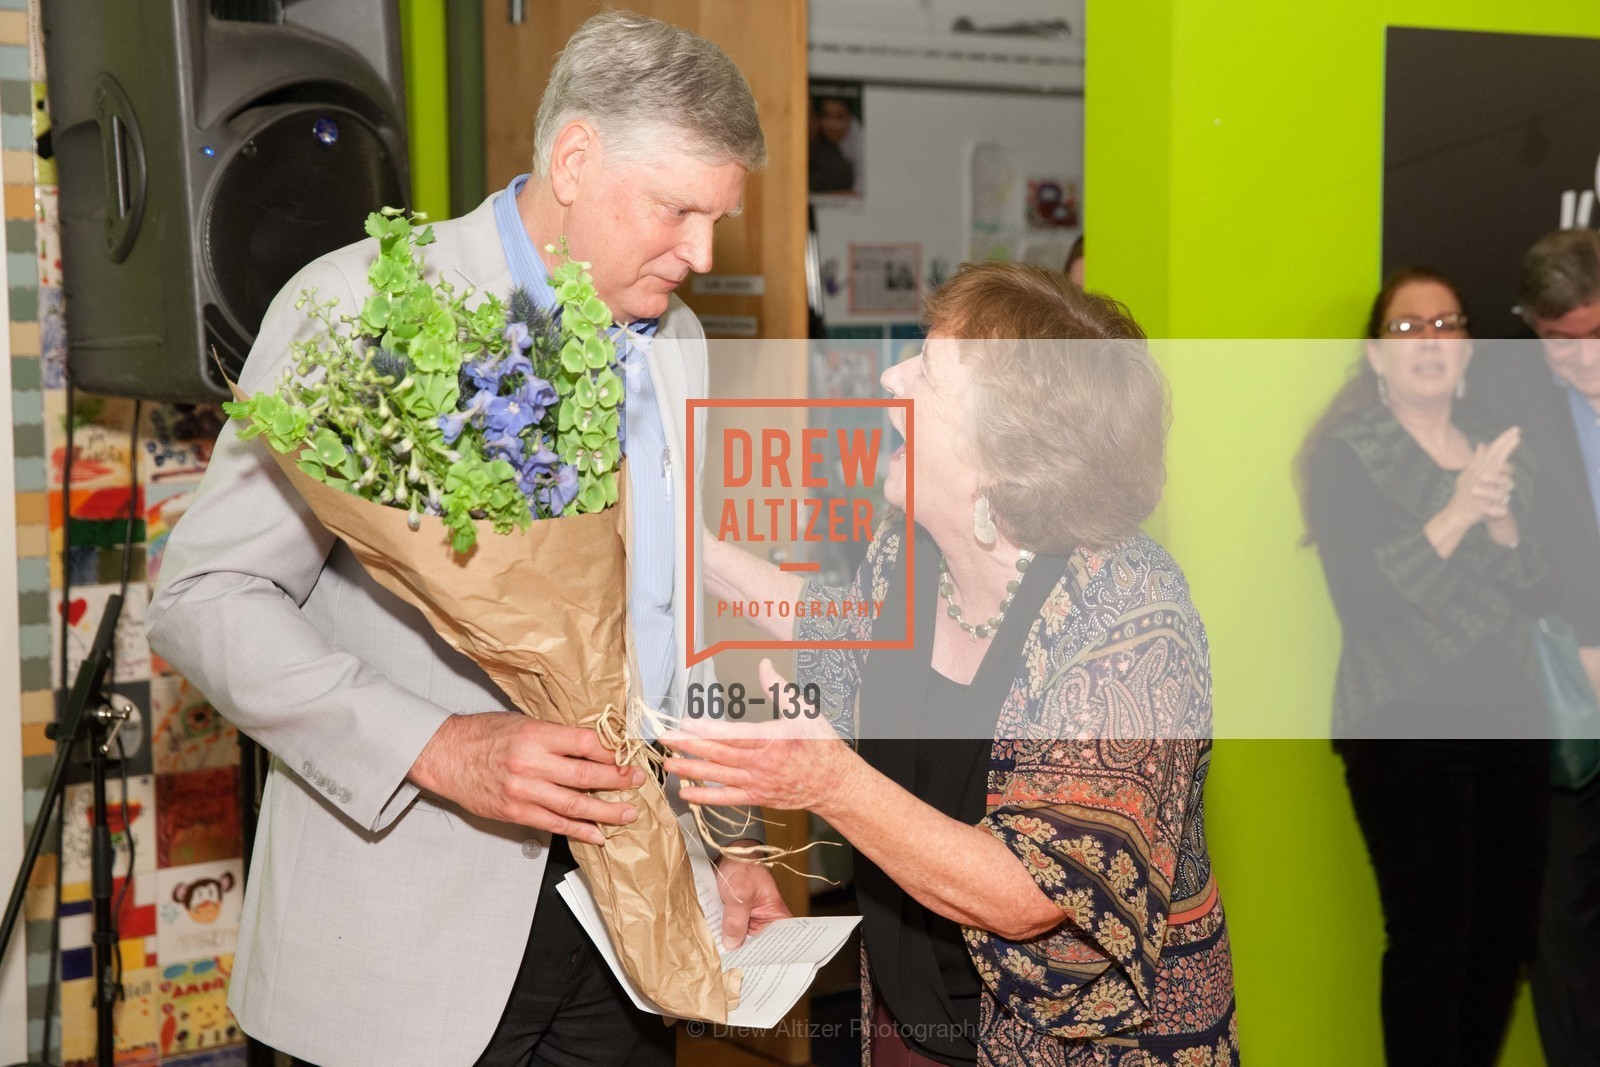 Dr. Daniel Wlodarcyzk, Martha Ryan, Homeless Prenatal Program Our House, Our Mission Gala, 2500 18th St, May 29th, 2015,Drew Altizer, Drew Altizer Photography, full-service event agency, private events, San Francisco photographer, photographer California